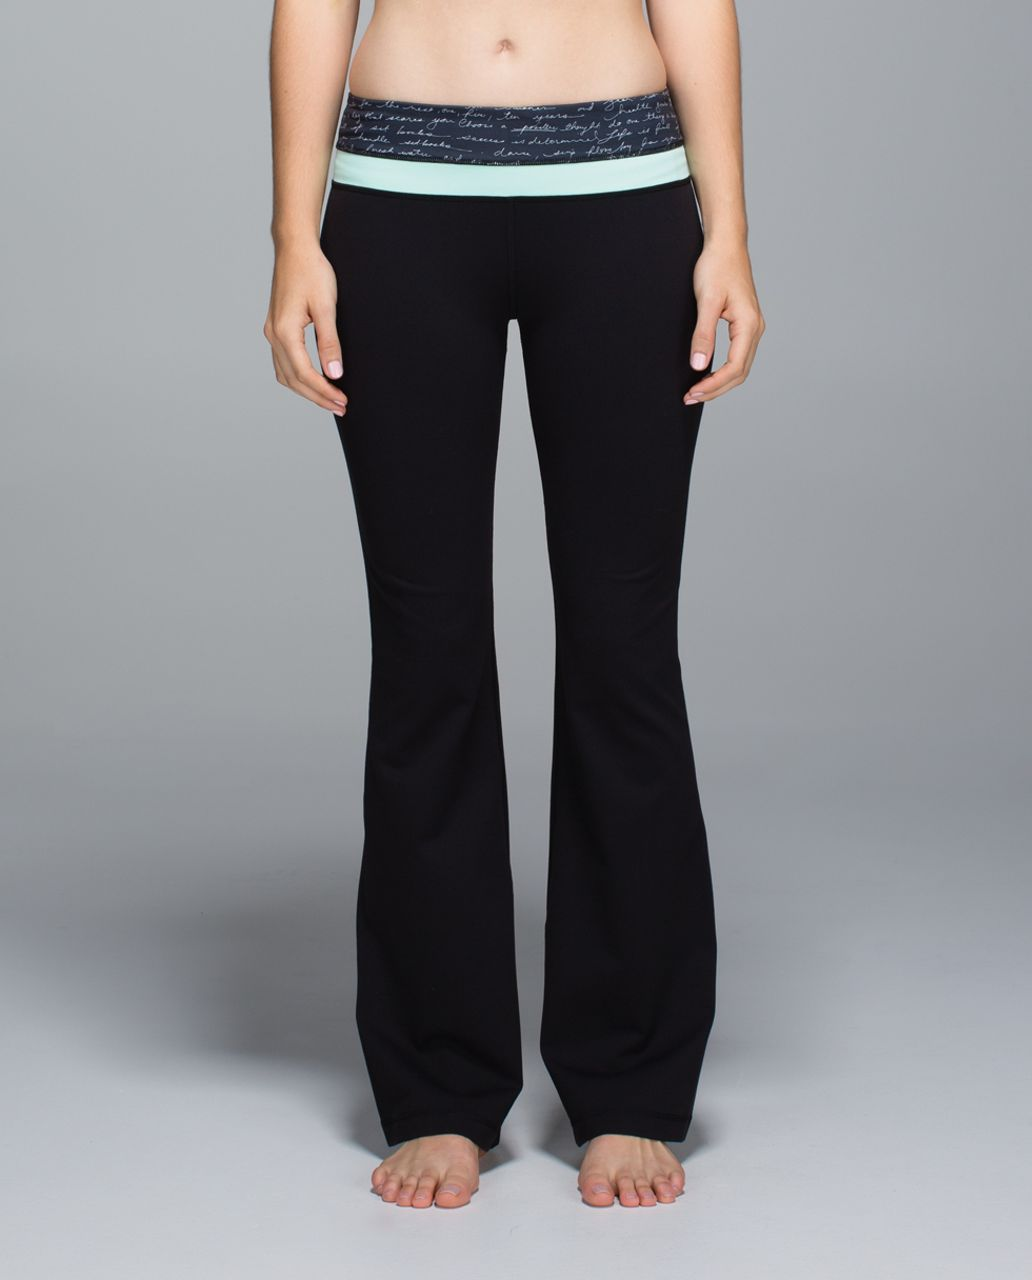 Lululemon Groove Pant *Full-On Luon (Regular) - Black / Manifesto Script Black Ghost / Toothpaste